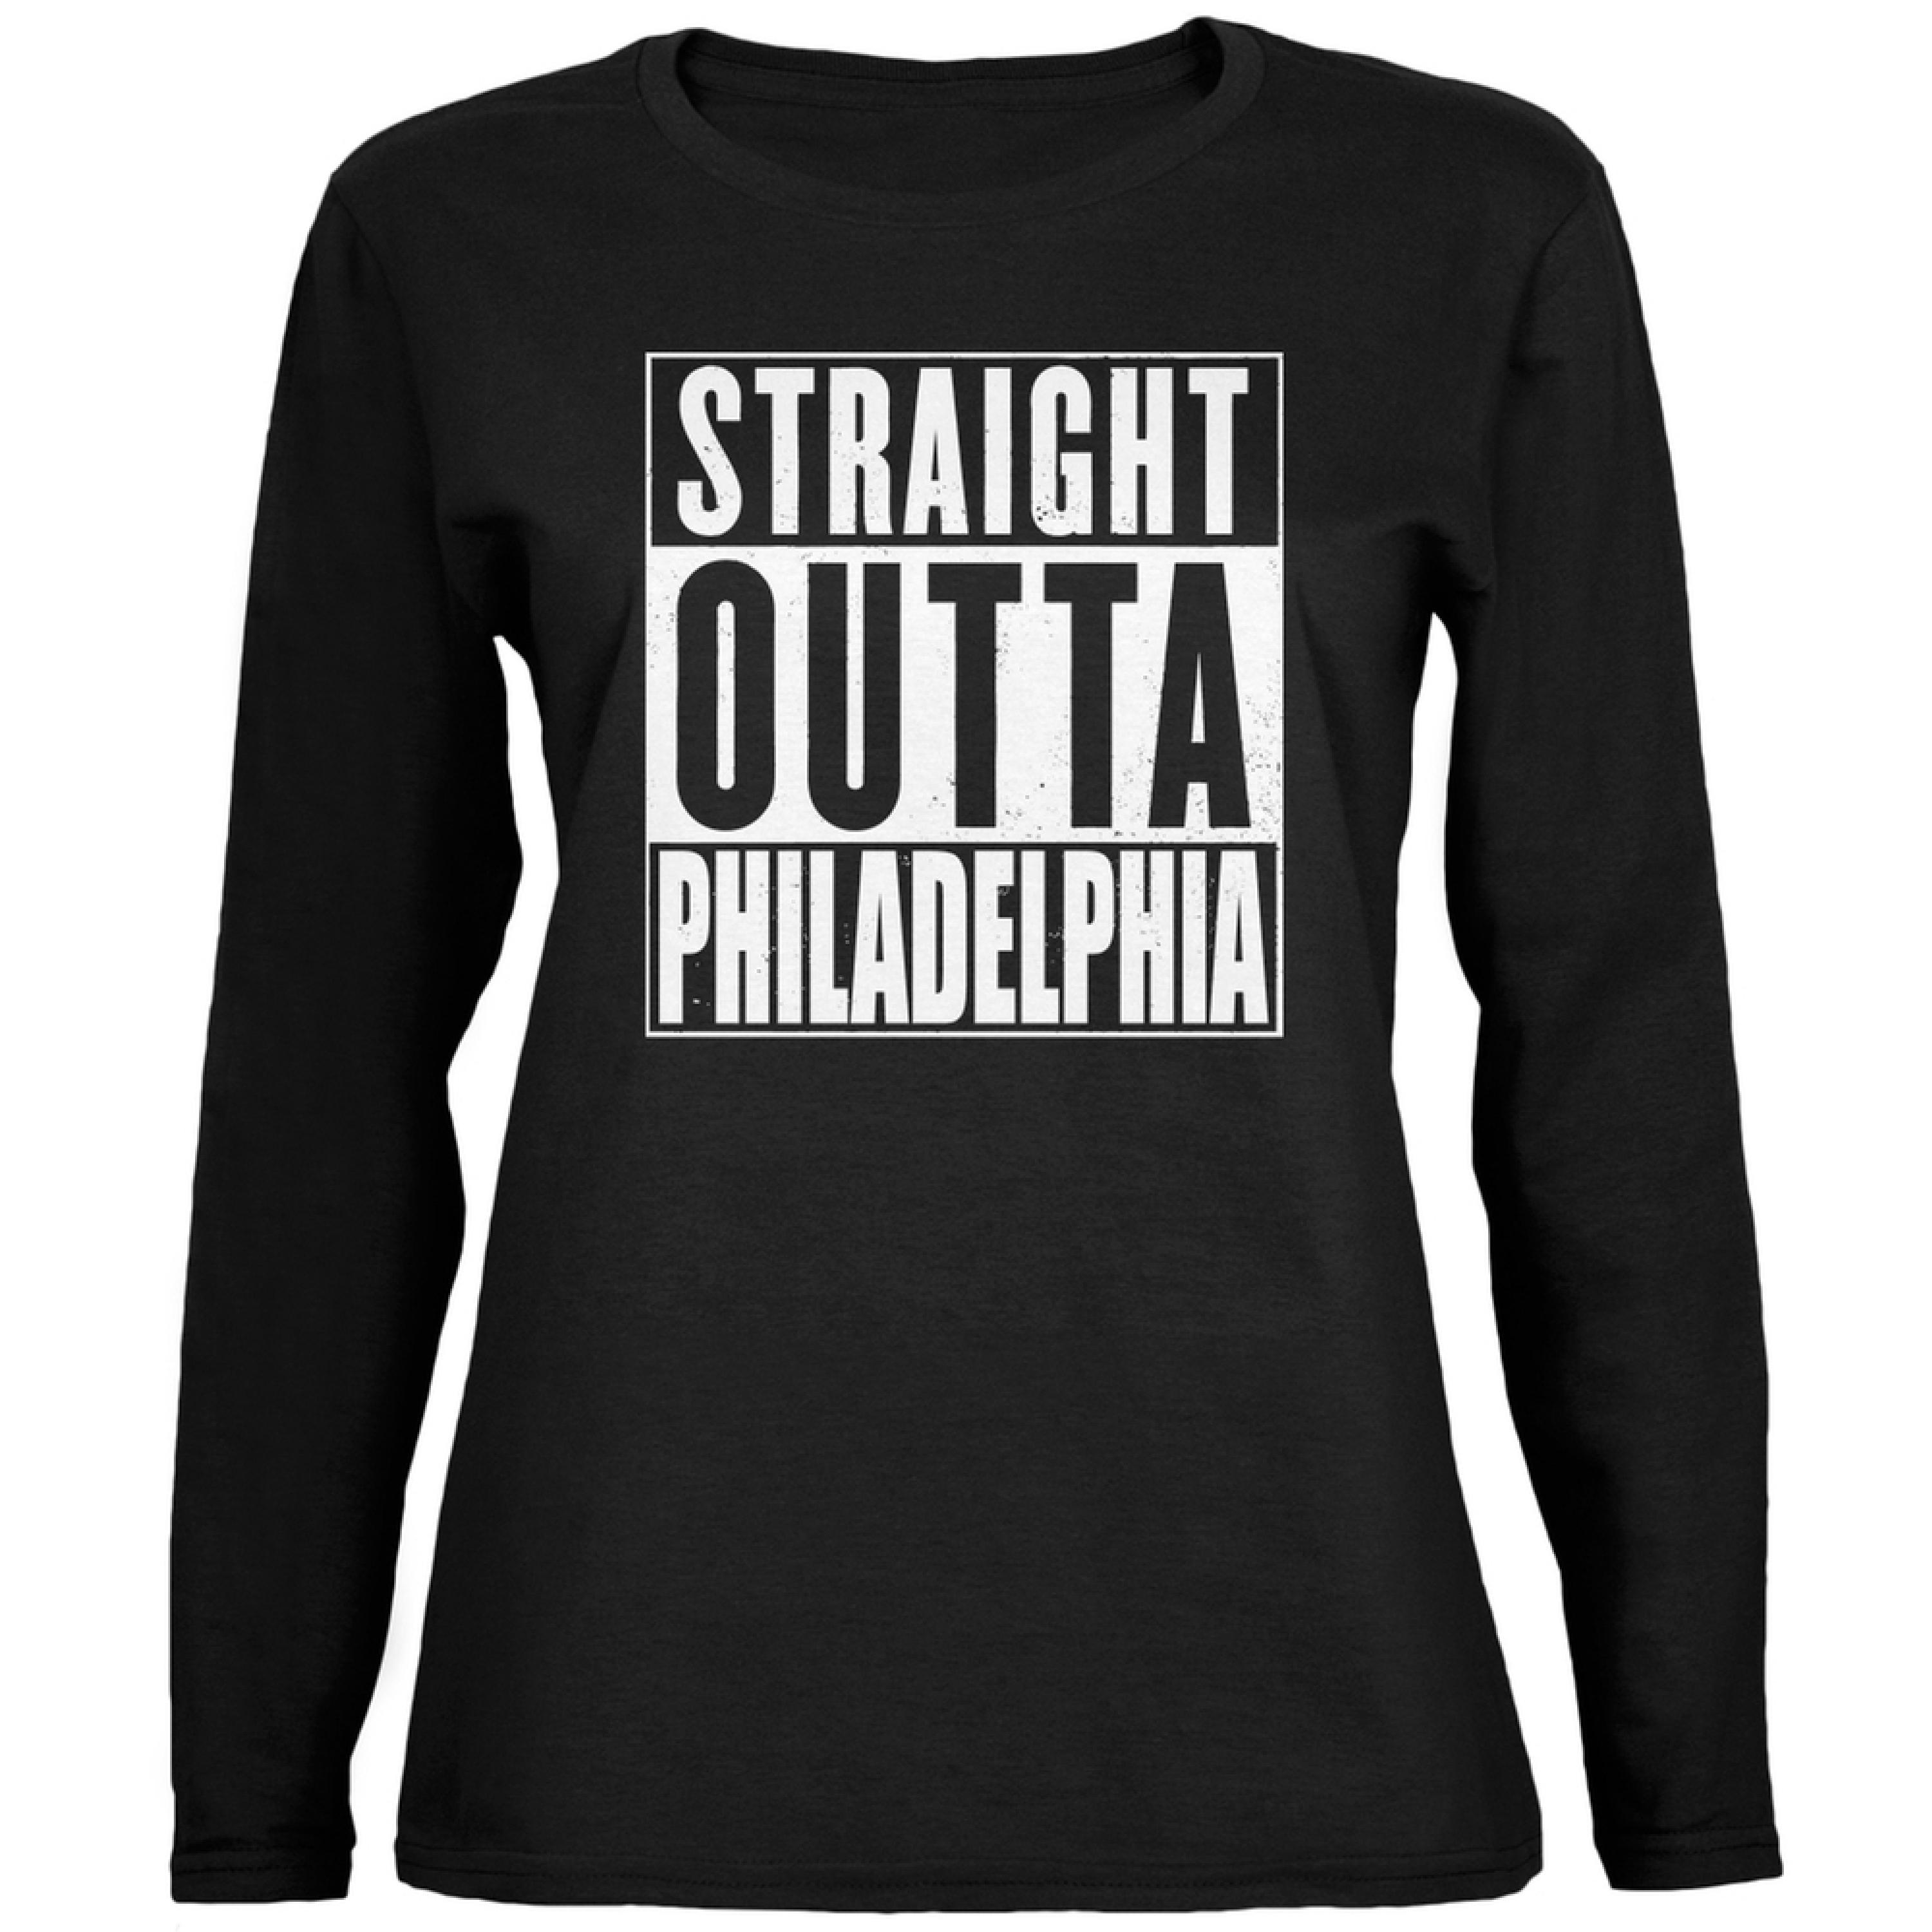 Straight Outta Philadelphia Black Womens Long Sleeve T-Shirt